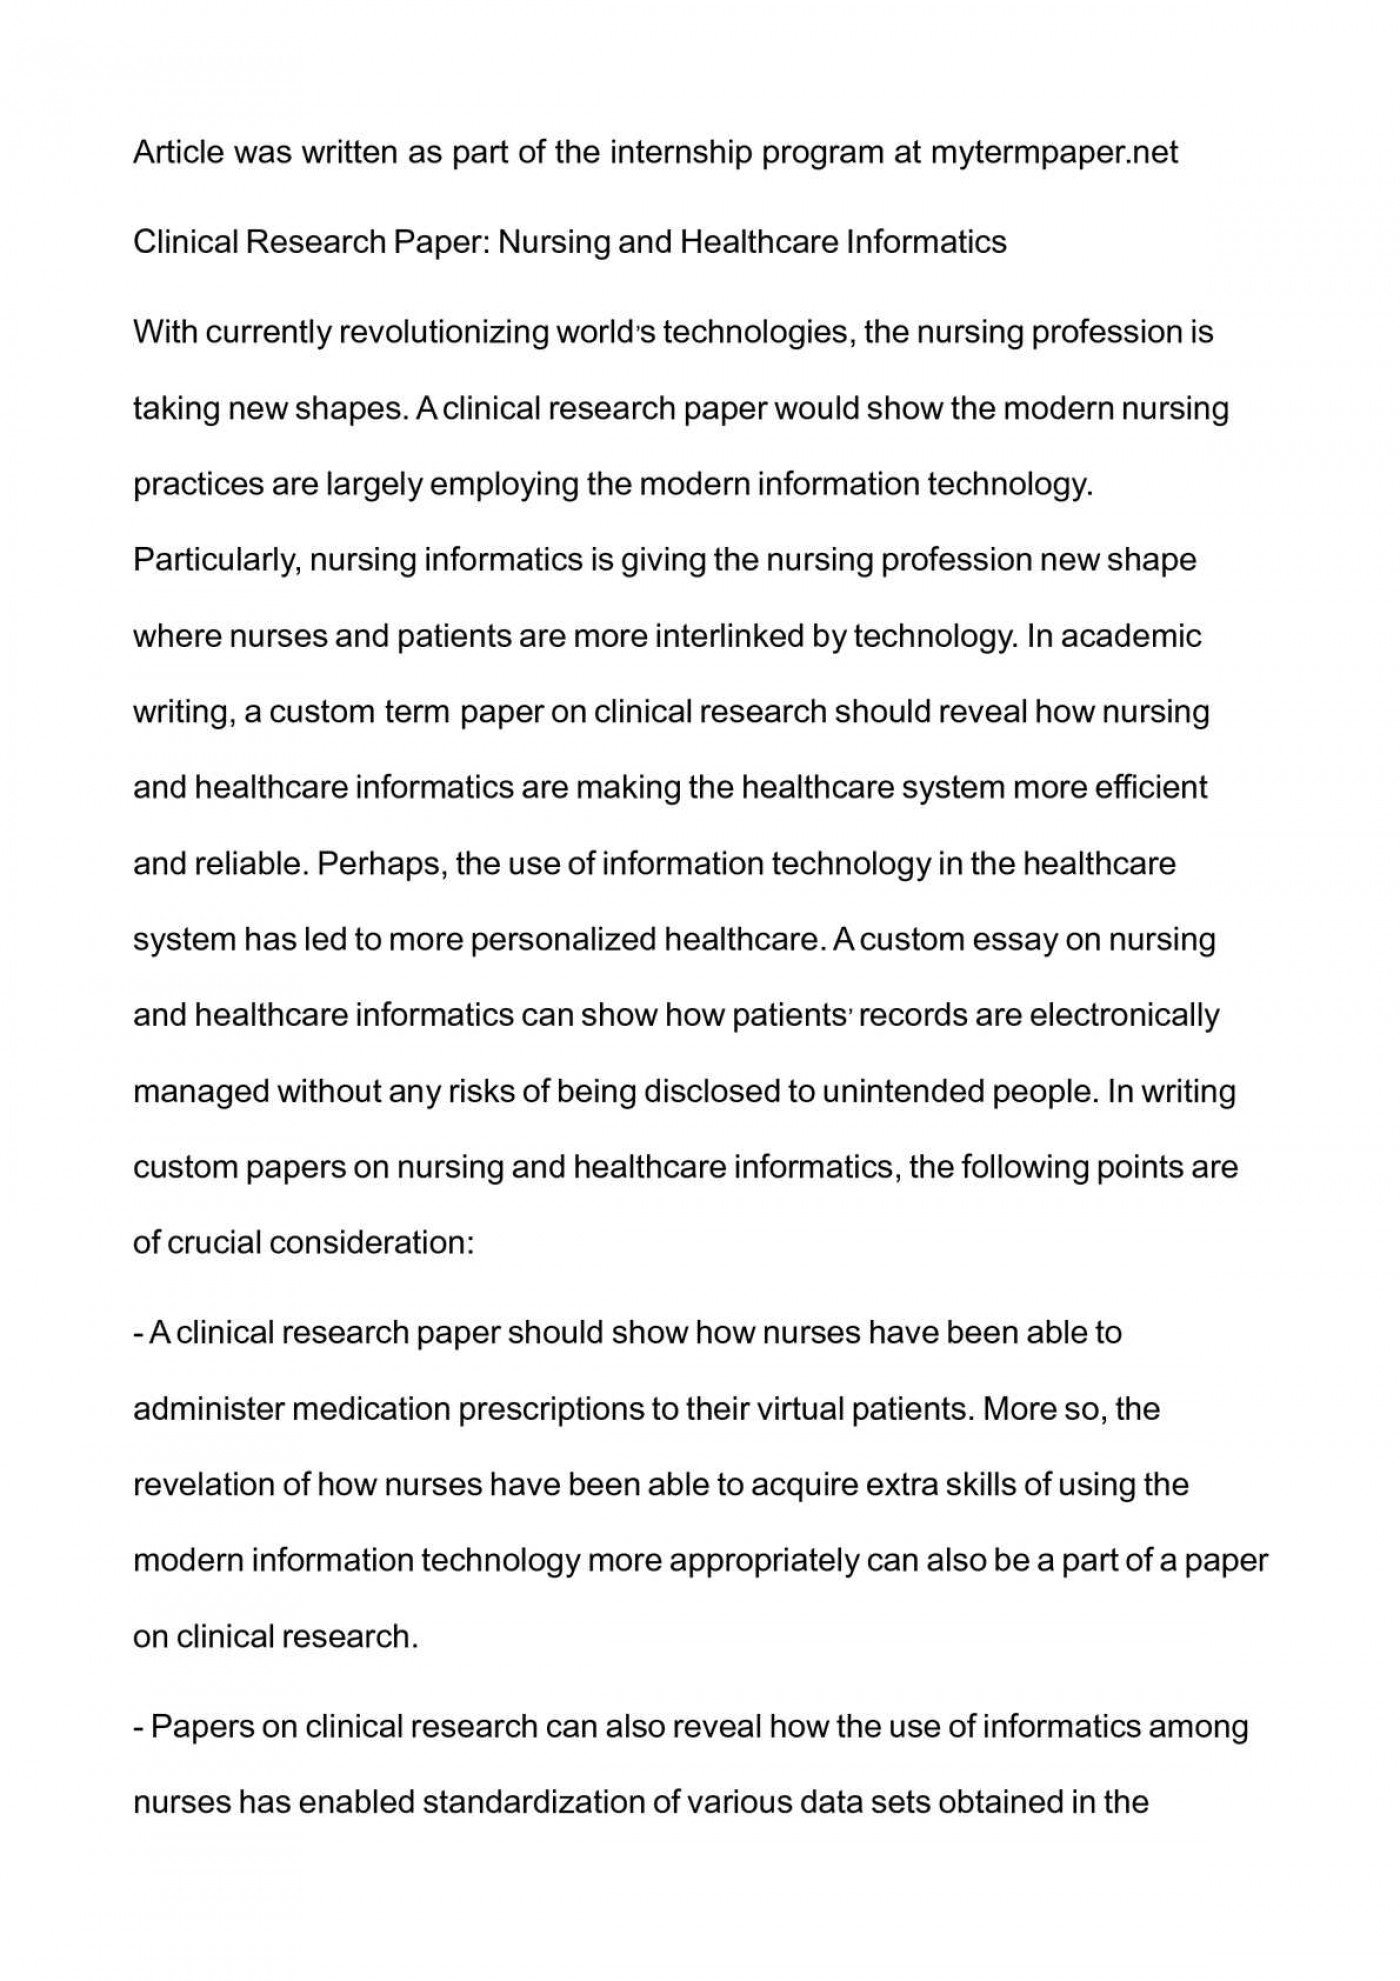 010 Research Paper Nursing Sensational On Home Abuse And Neglect Career Outline Burnout 1400